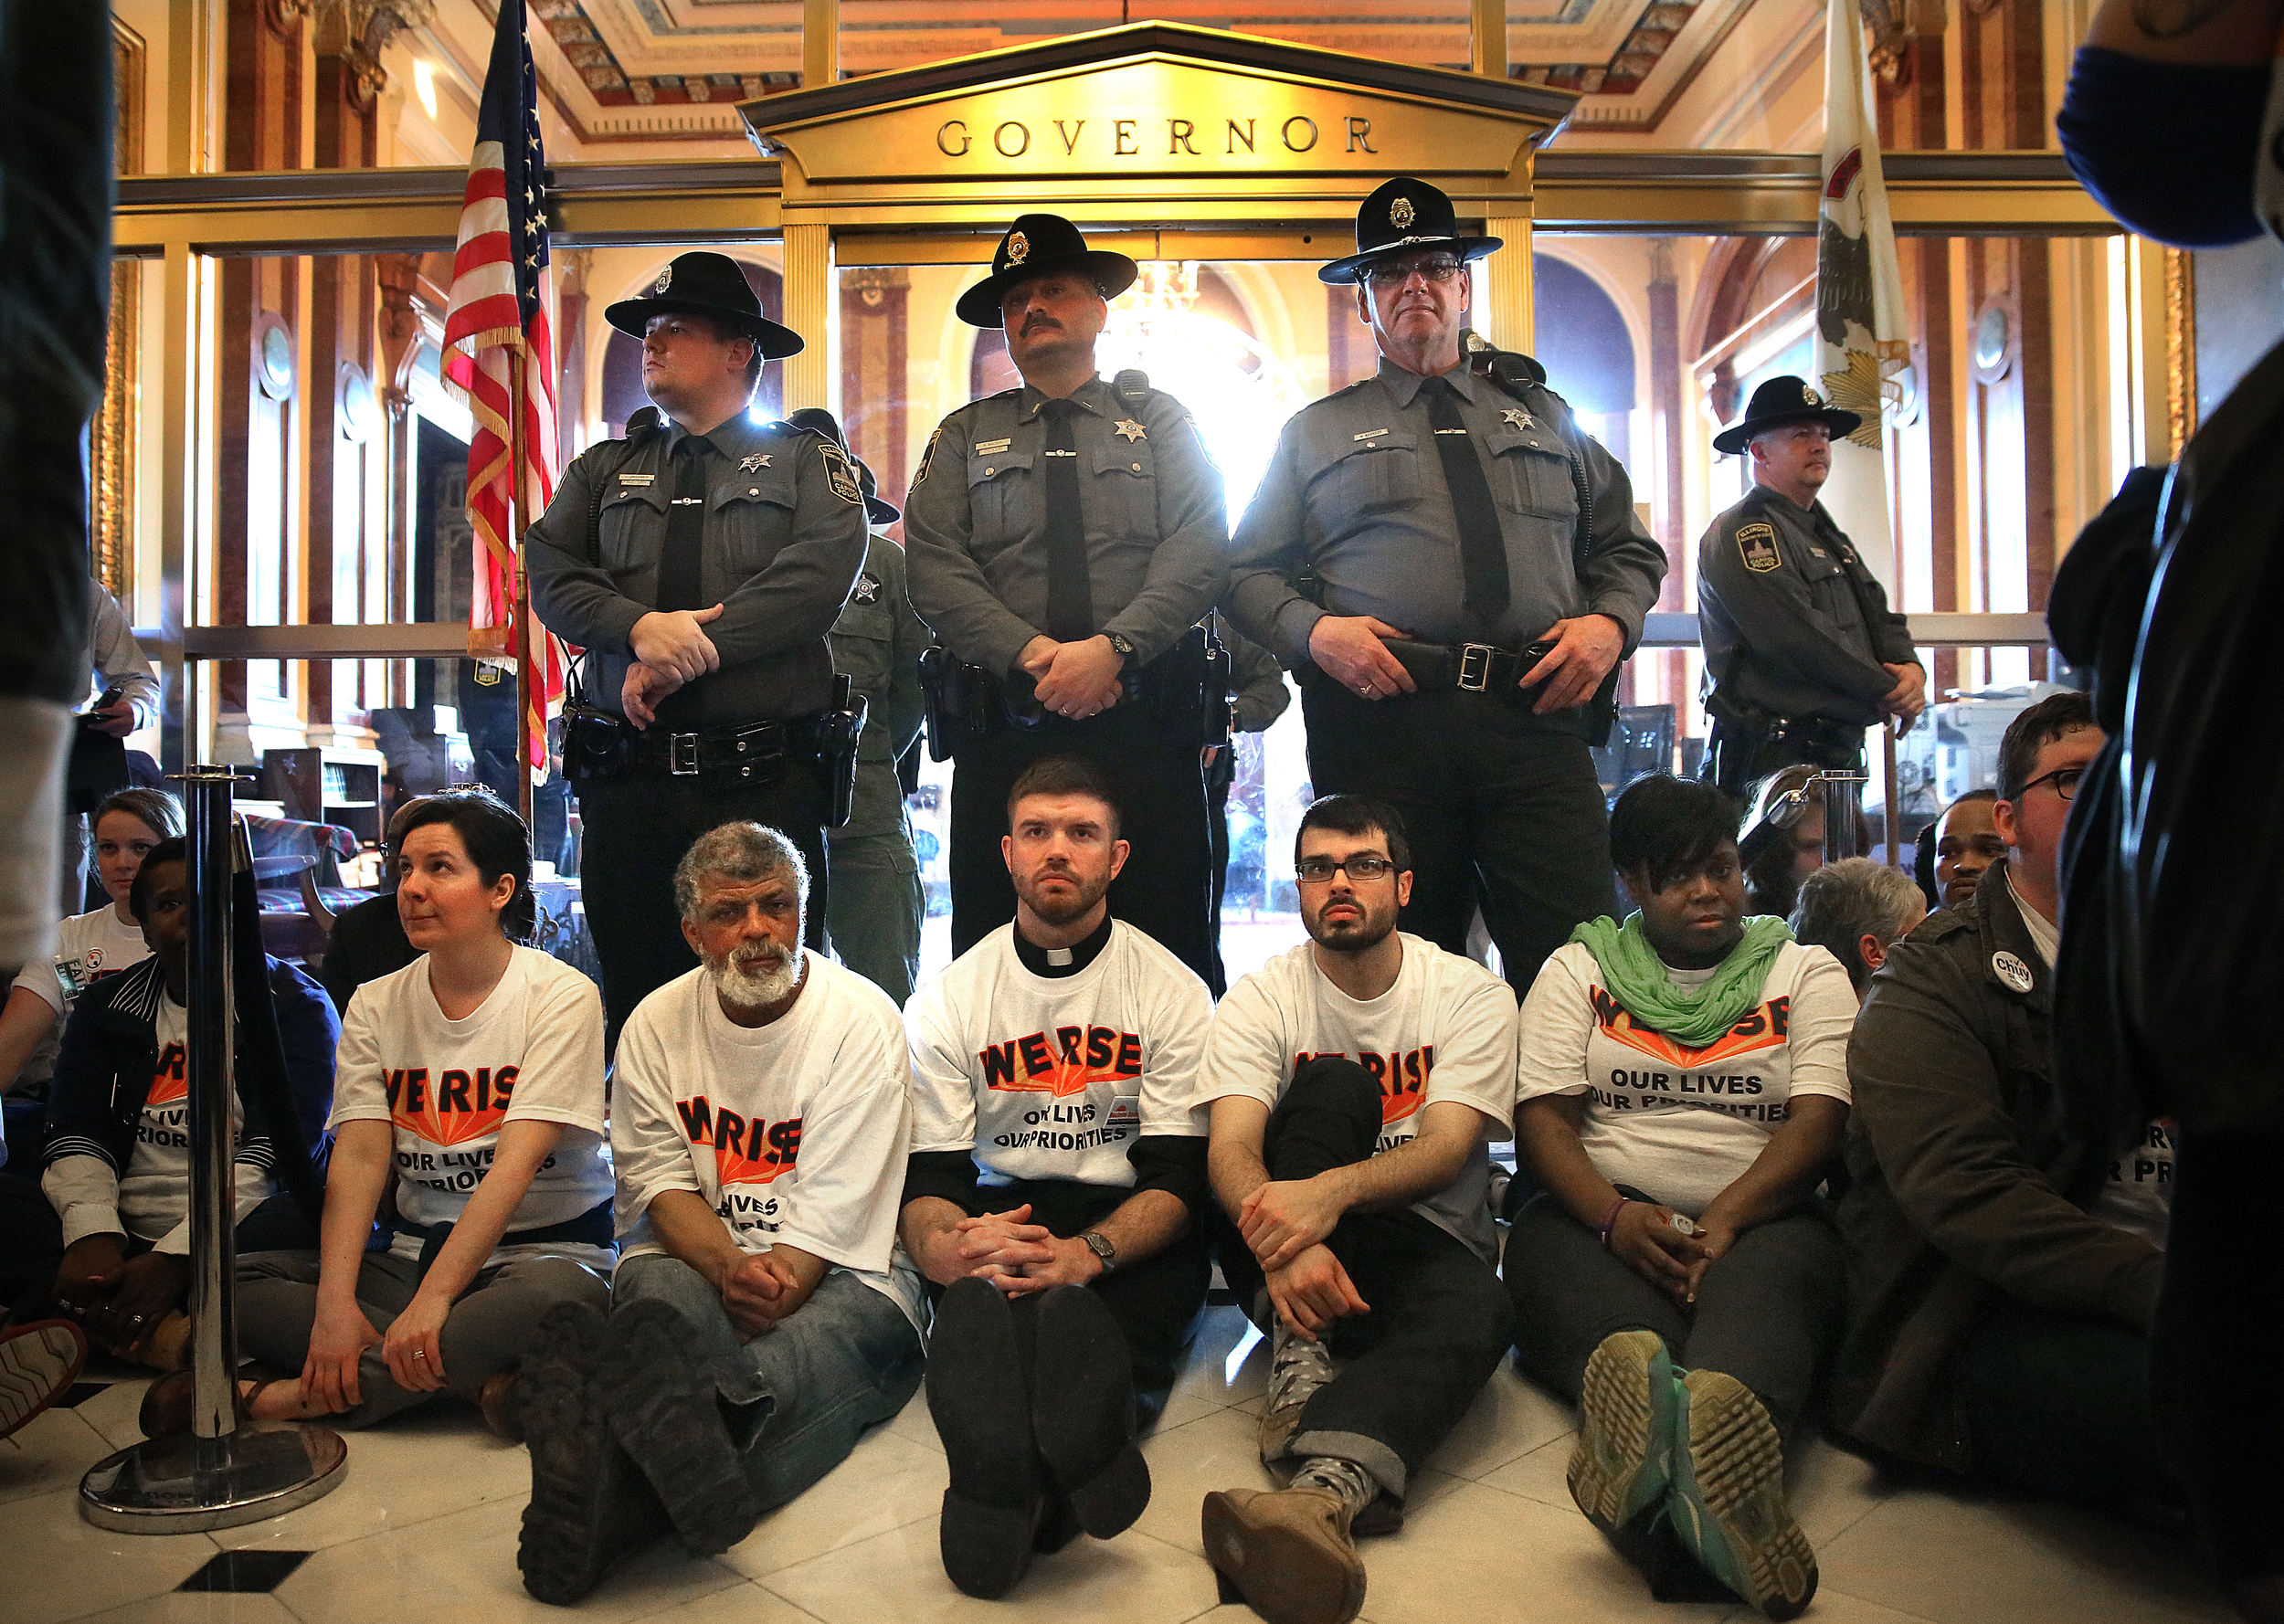 """In an act of civil disobedience, protestors sat together in front of the Governor's office inside the Capitol building while Secretary of State police stand guard behind them on Wed. March 11, 2015. As part of """"We Rise"""", a national day of action targeting state budget cuts, several thousand people from faith, community and labor organizations including adults, children and clergy affected by Gov. Bruce Rauner's proposed cuts gathered in Springfield to protest. The event began with a rally inside the Capitol building followed by a march to the governor's mansion where a mock """"funeral"""" for the """"99%"""" took place. David Spencer/The State Journal-Register"""